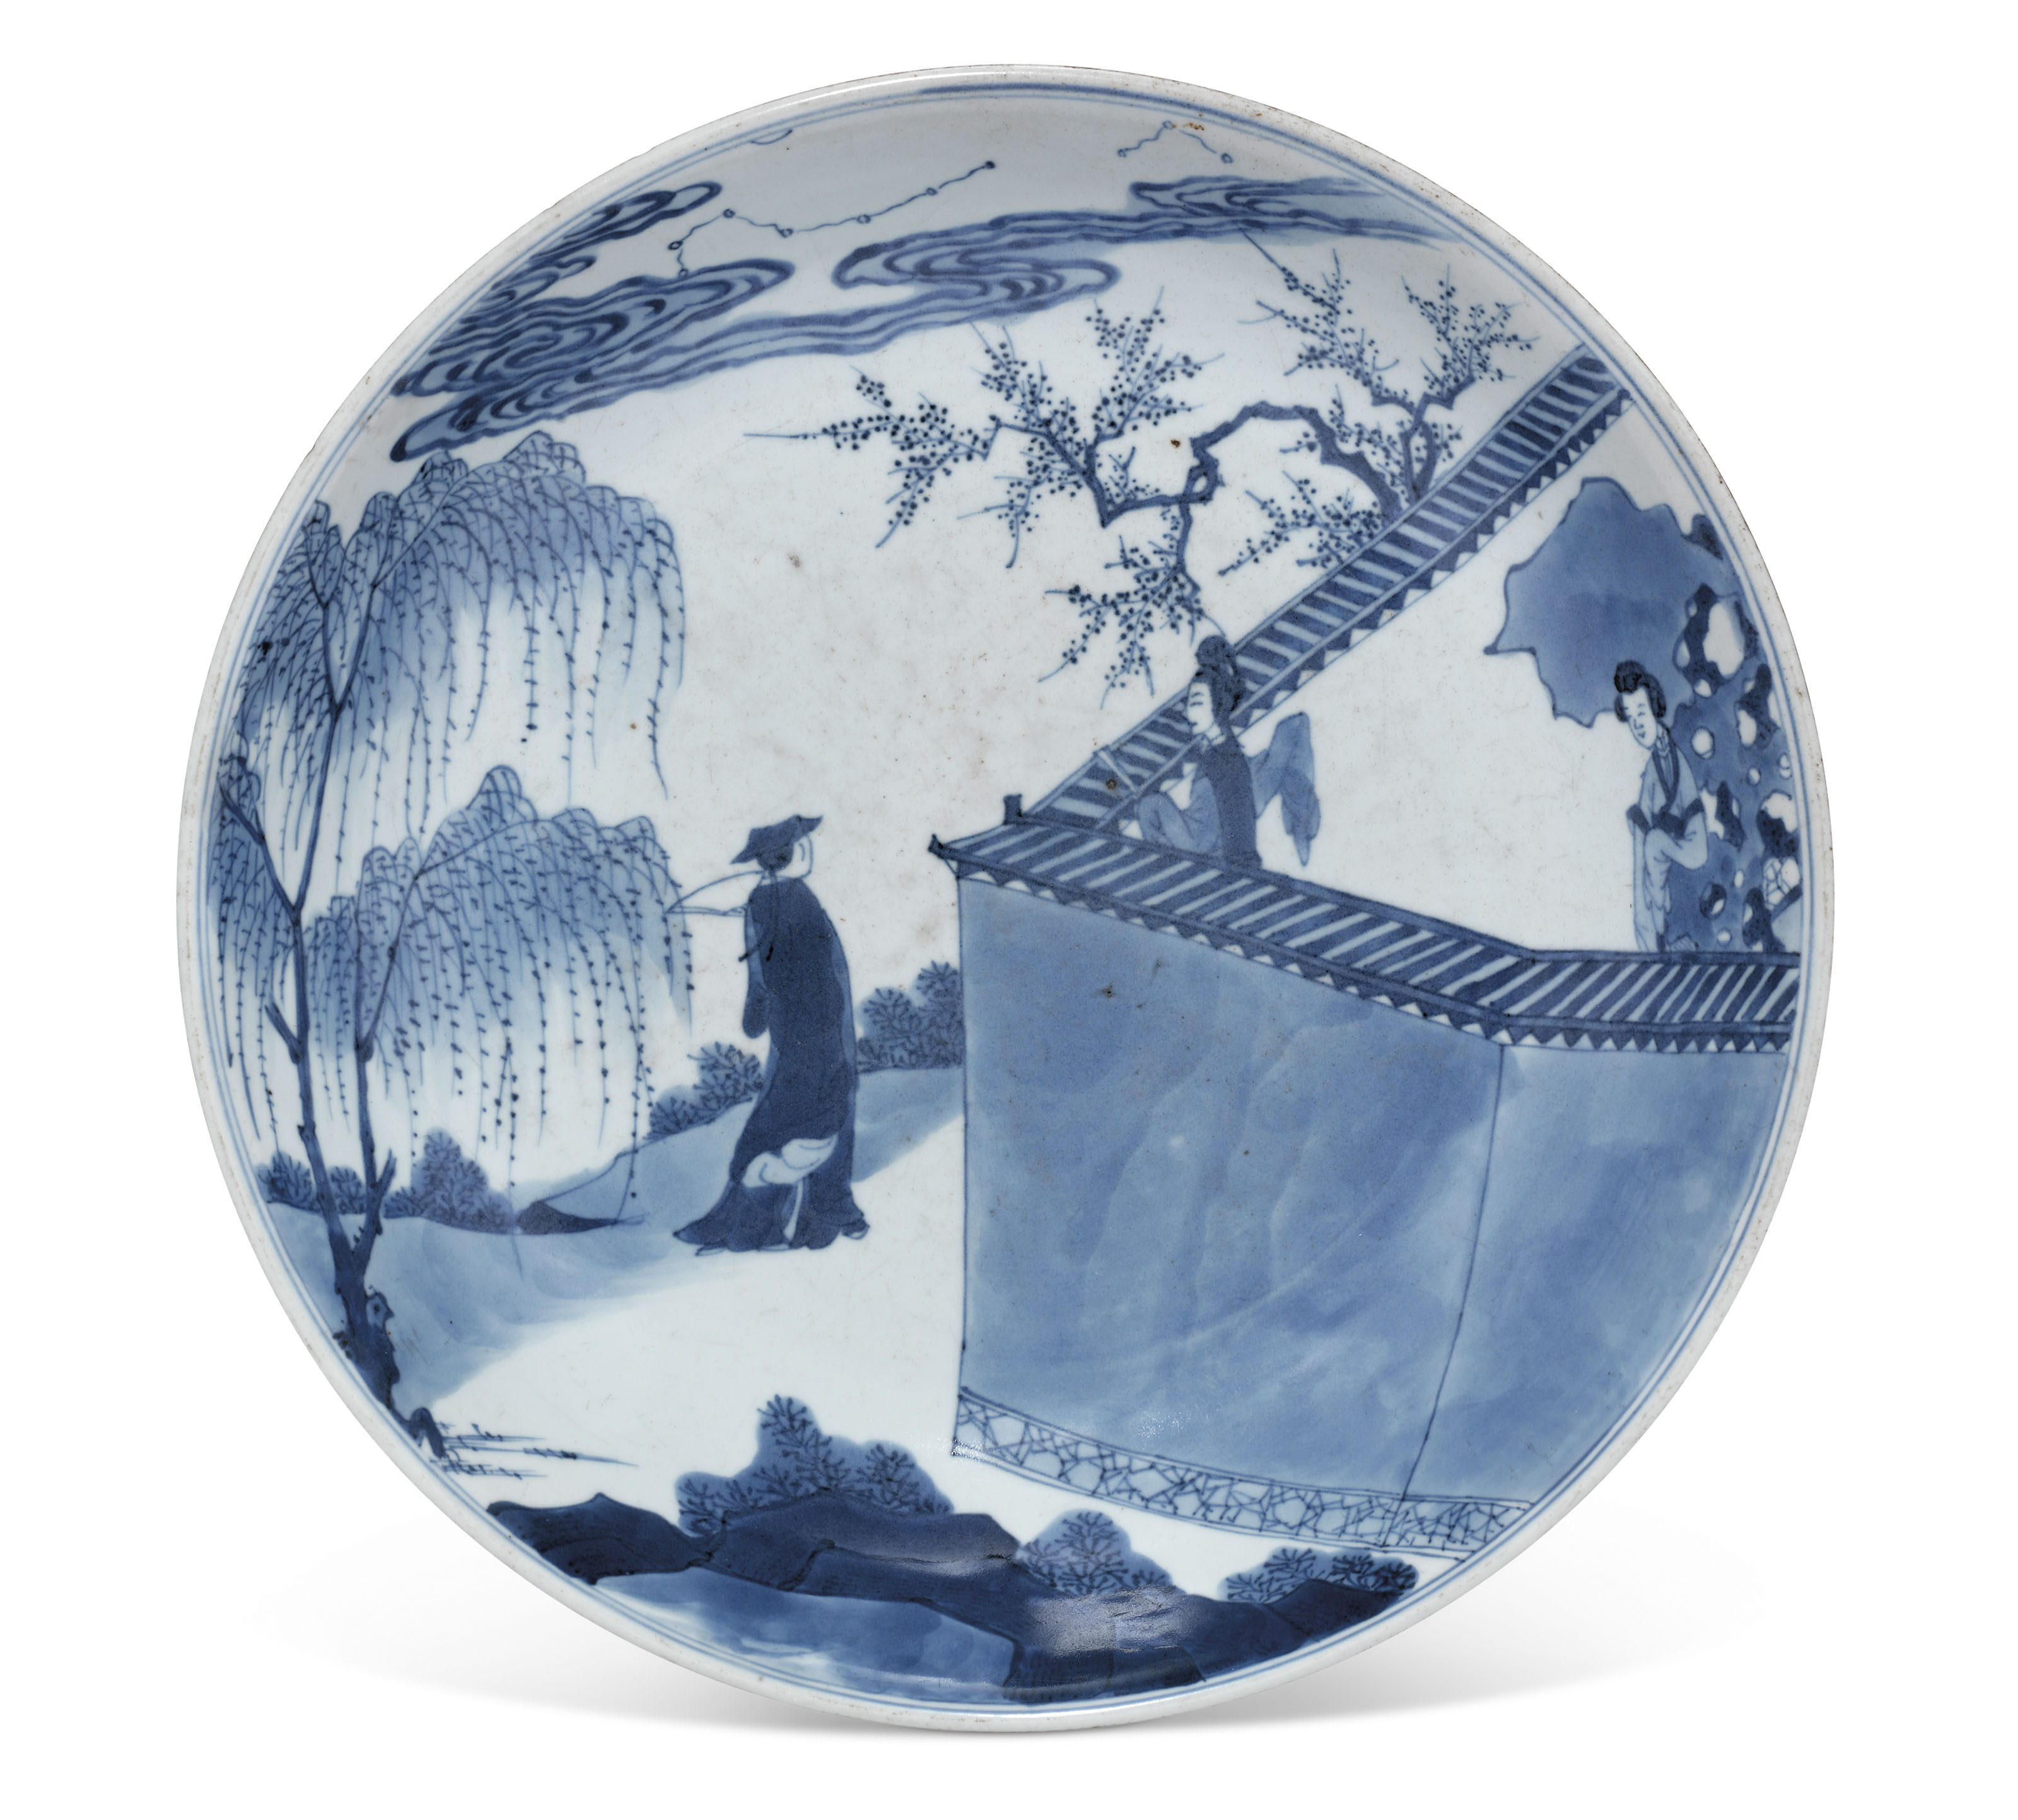 A BLUE AND WHITE 'ROMANCE OF THE WESTERN CHAMBER' DISH